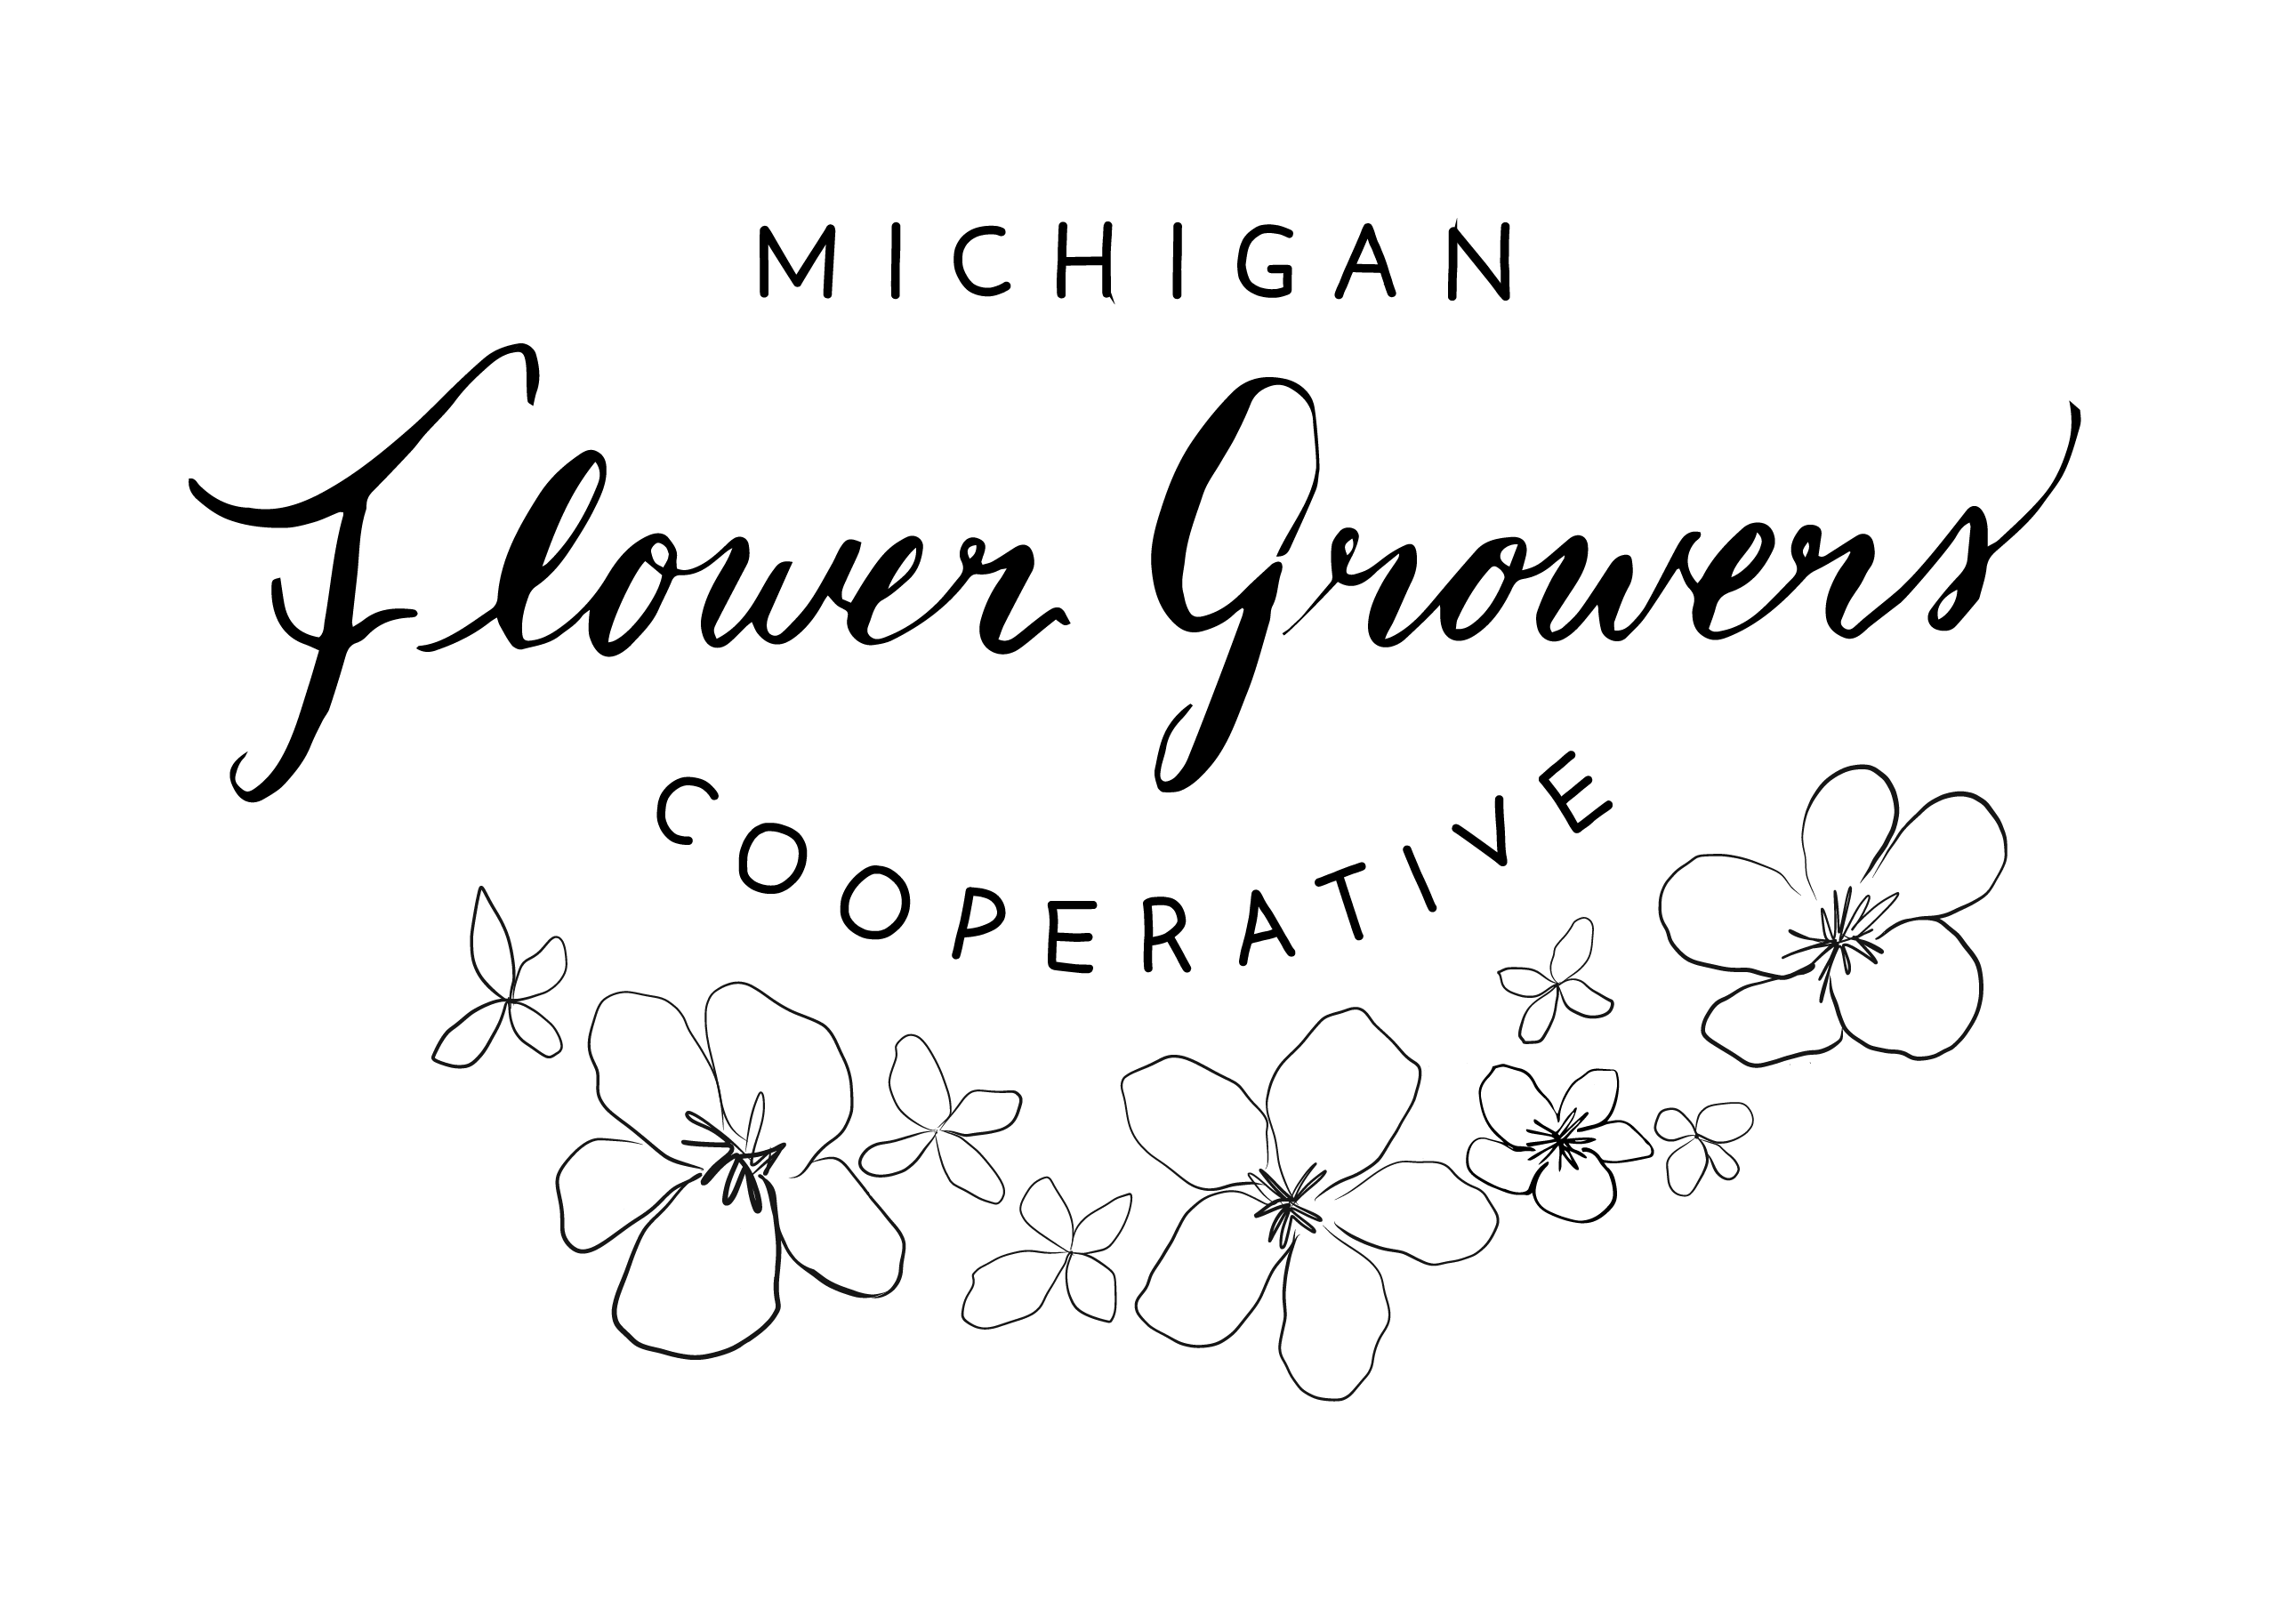 Michigan FG Coop logo